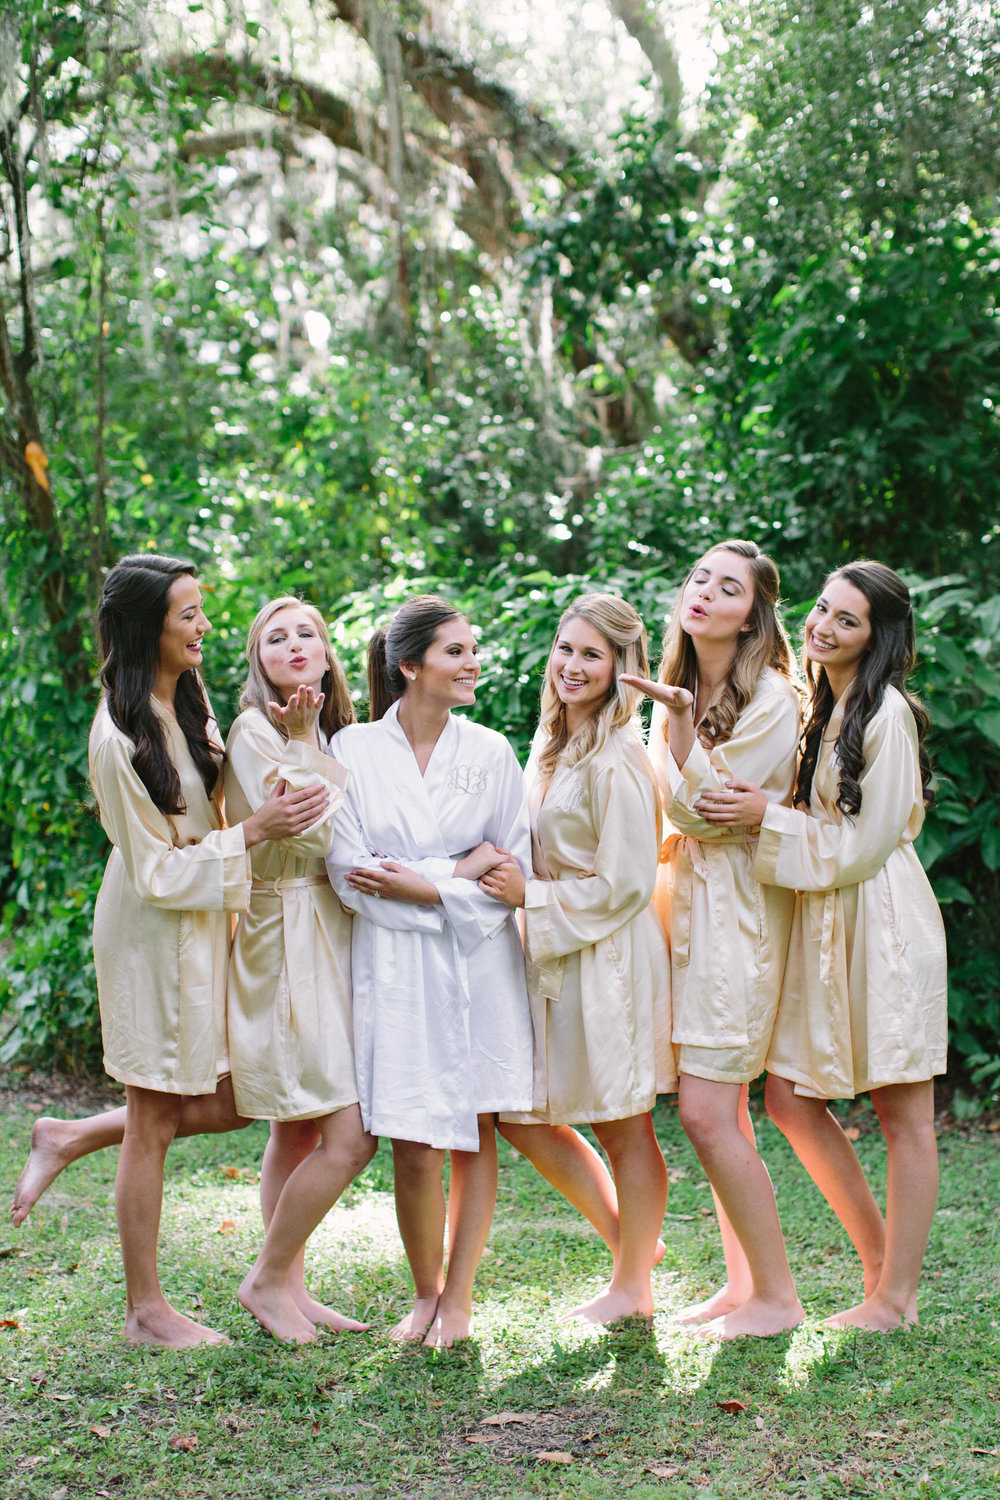 Bridesmaids Plant City Florida Wedding Photographer Benjamin Hewitt Photography